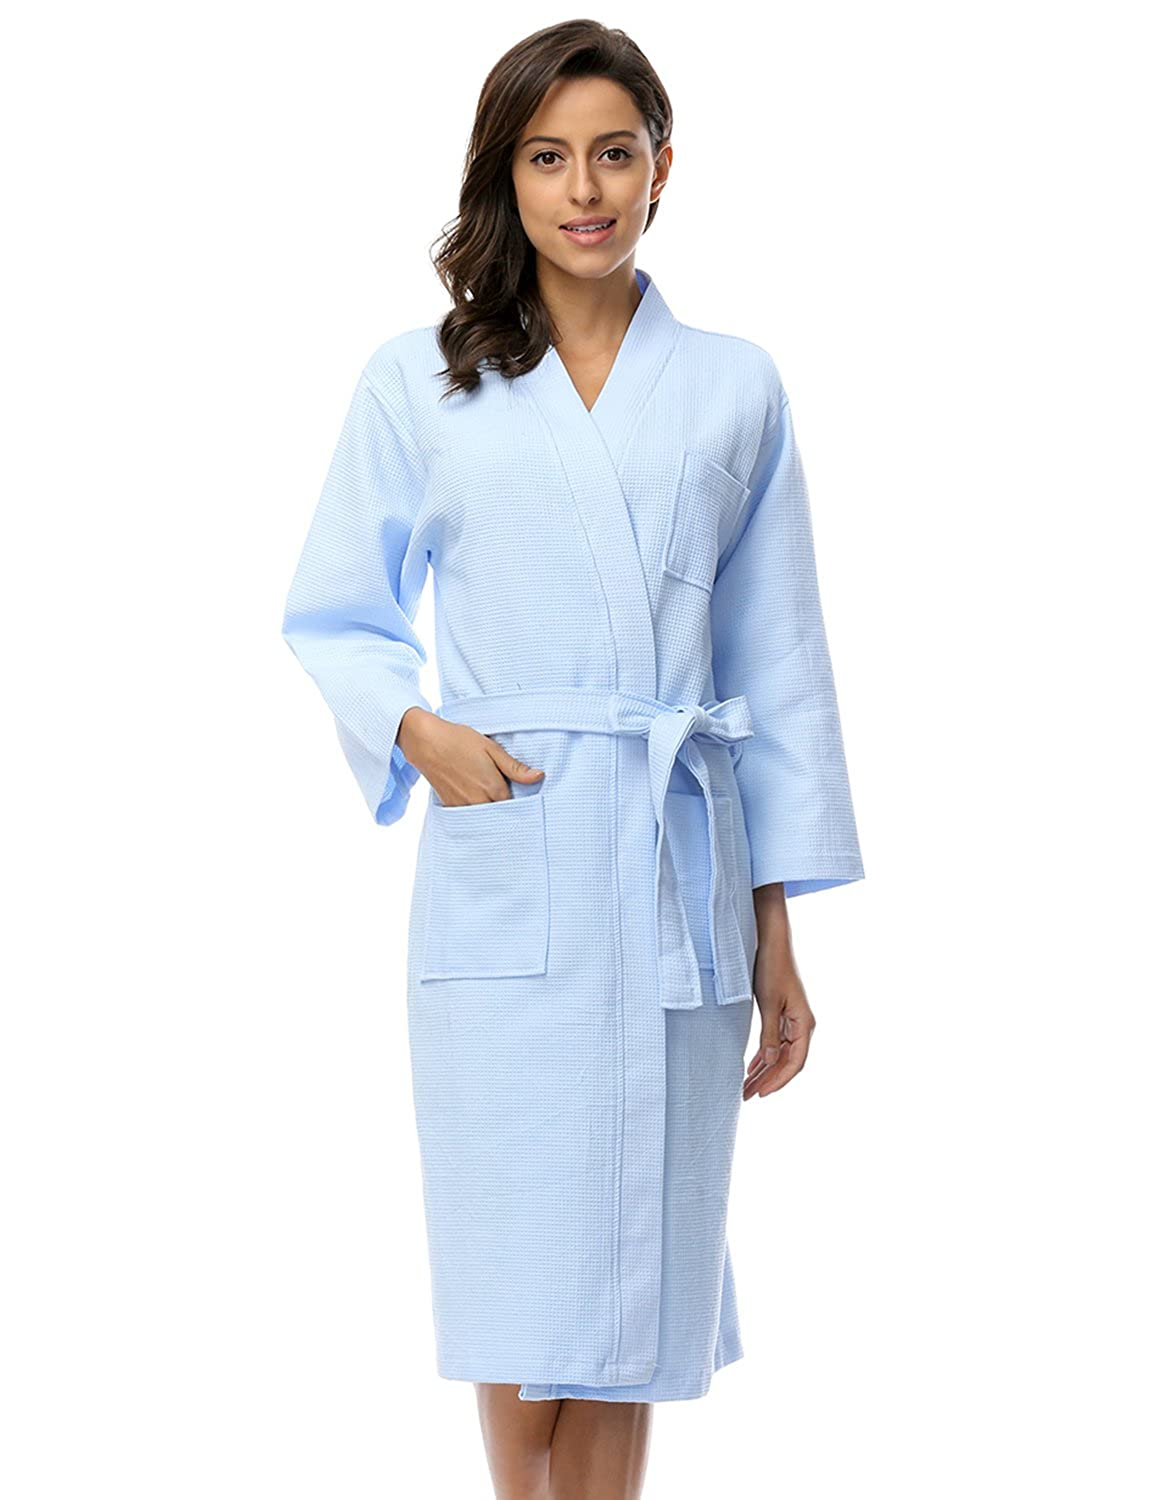 BELLOO Women Cotton Waffle Bathrobe Light Weight Dressing Gown   Amazon.co.uk  Clothing f8f794fb1